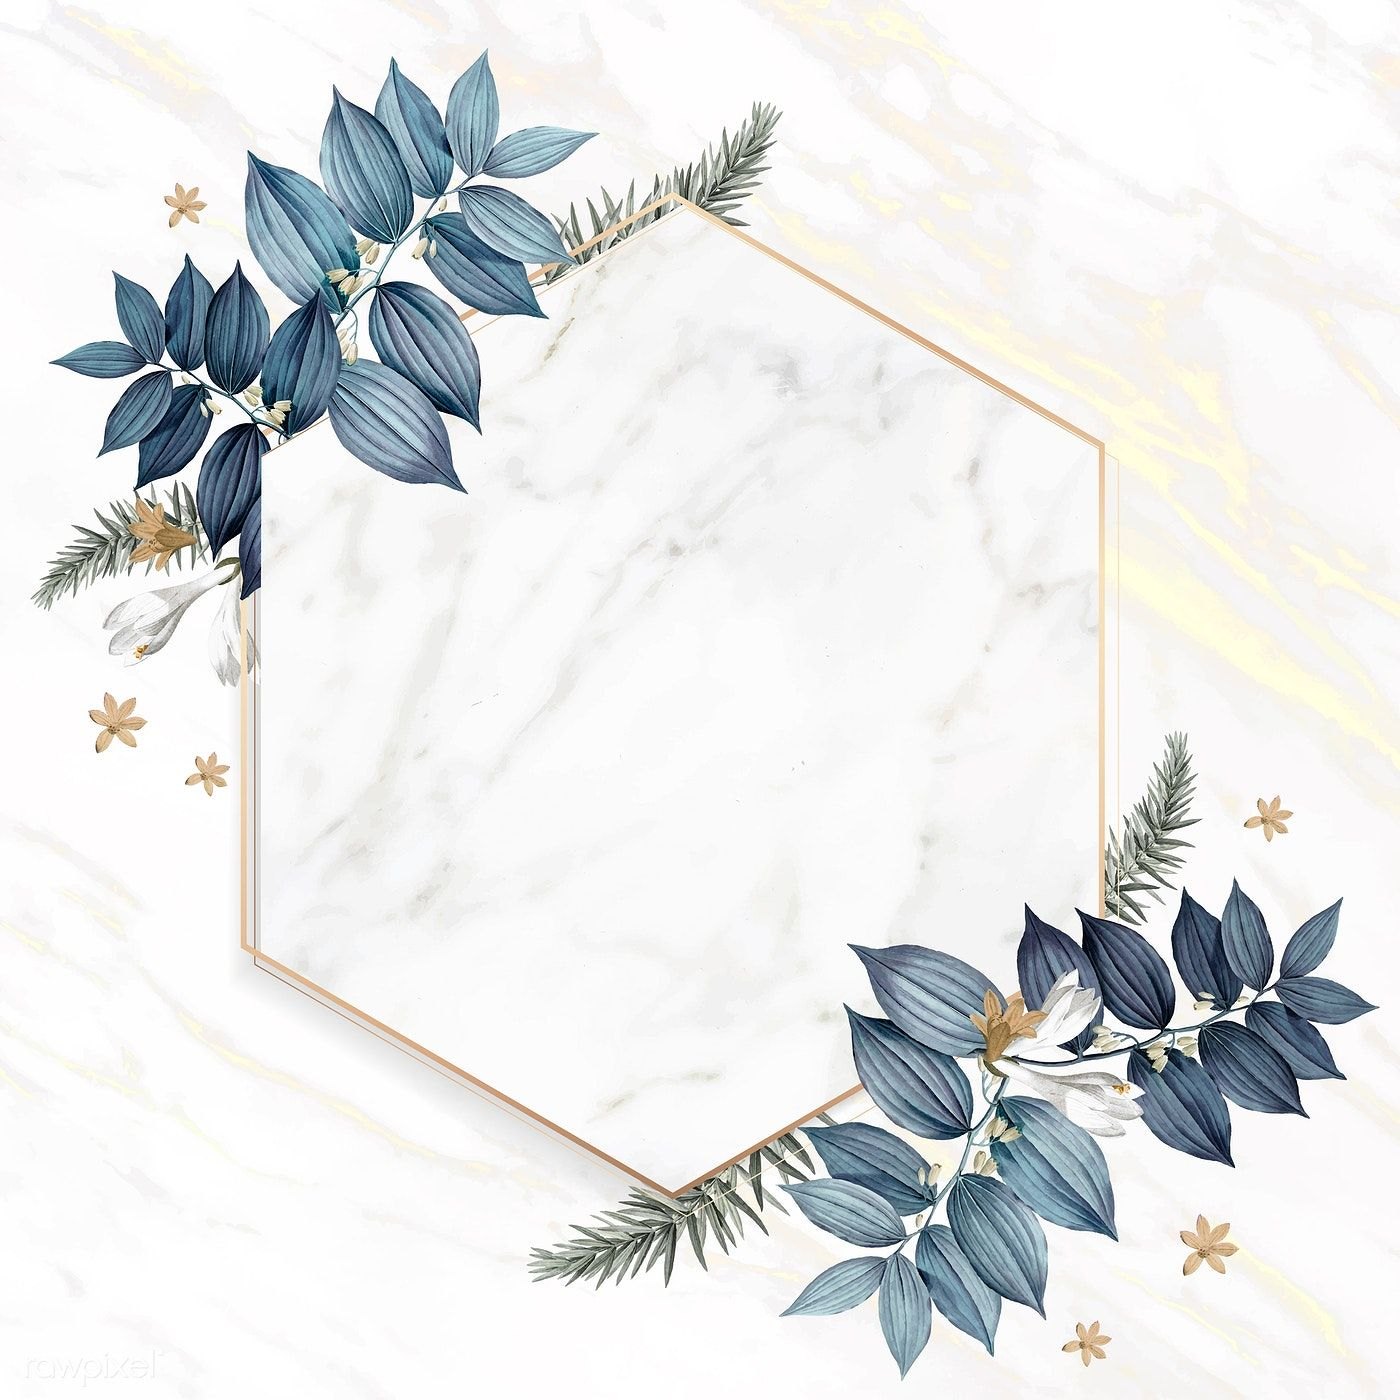 Download premium vector of Hexagon foliage frame on white